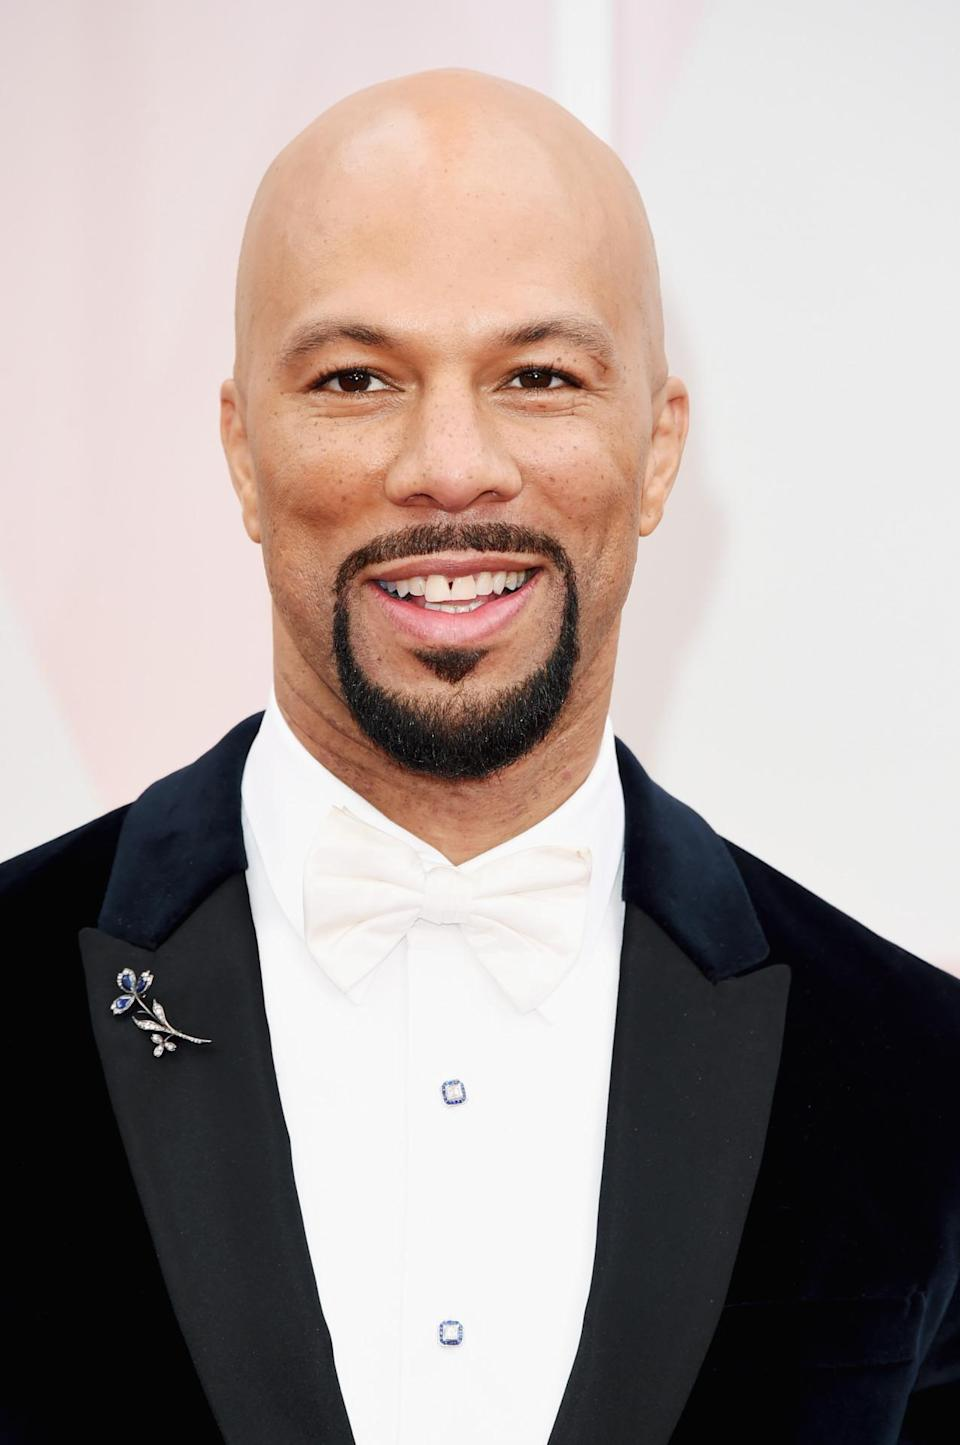 <p>Common's facial hair makes up for the simplicity of his bald head. <i>(Photo: Getty Images)</i></p>